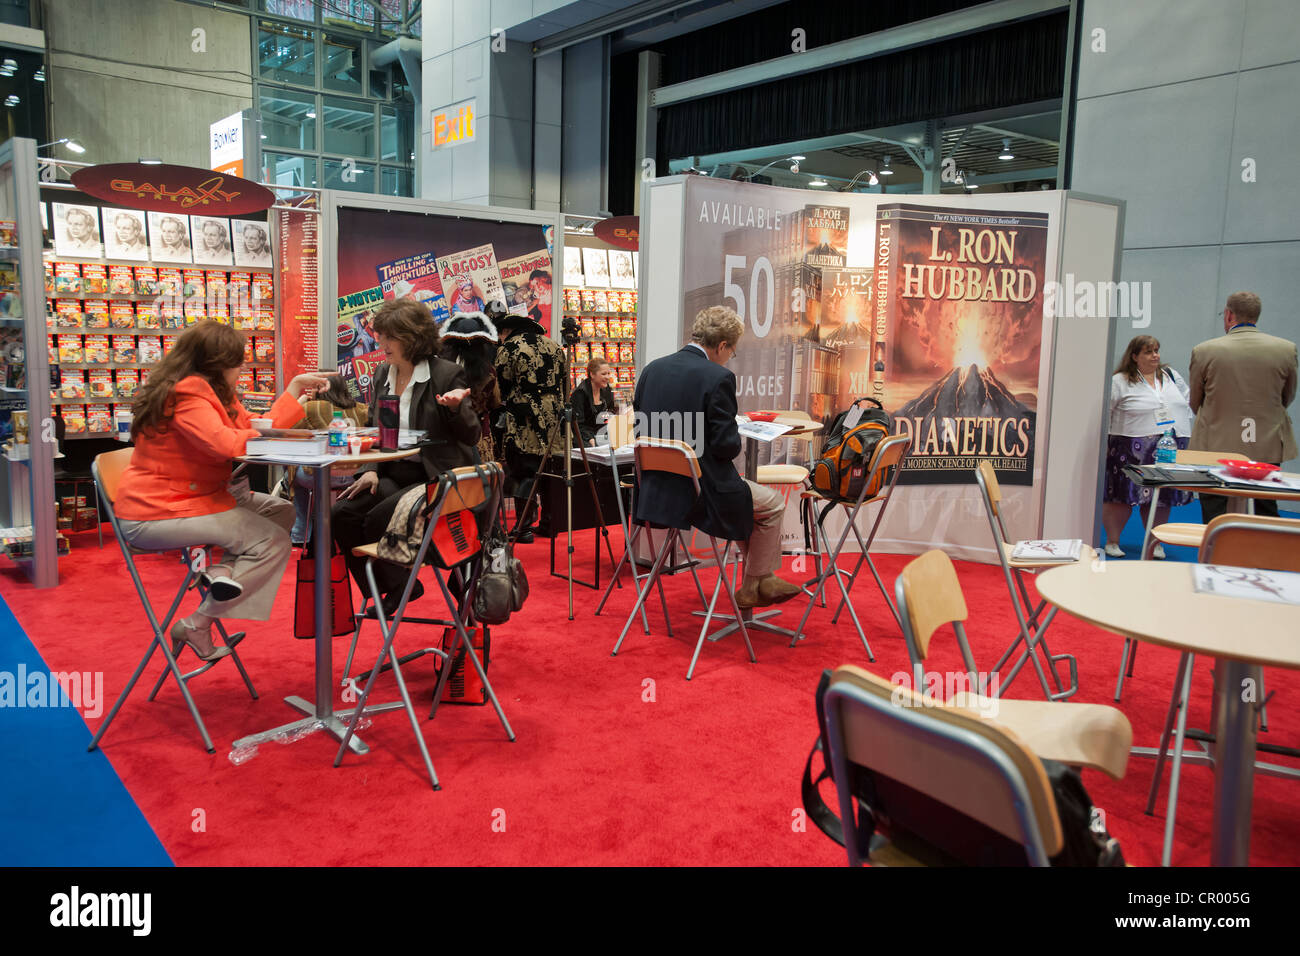 The Bridge Communications booth selling the works of L. Ron Hubbard at Book Expo America in New York - Stock Image